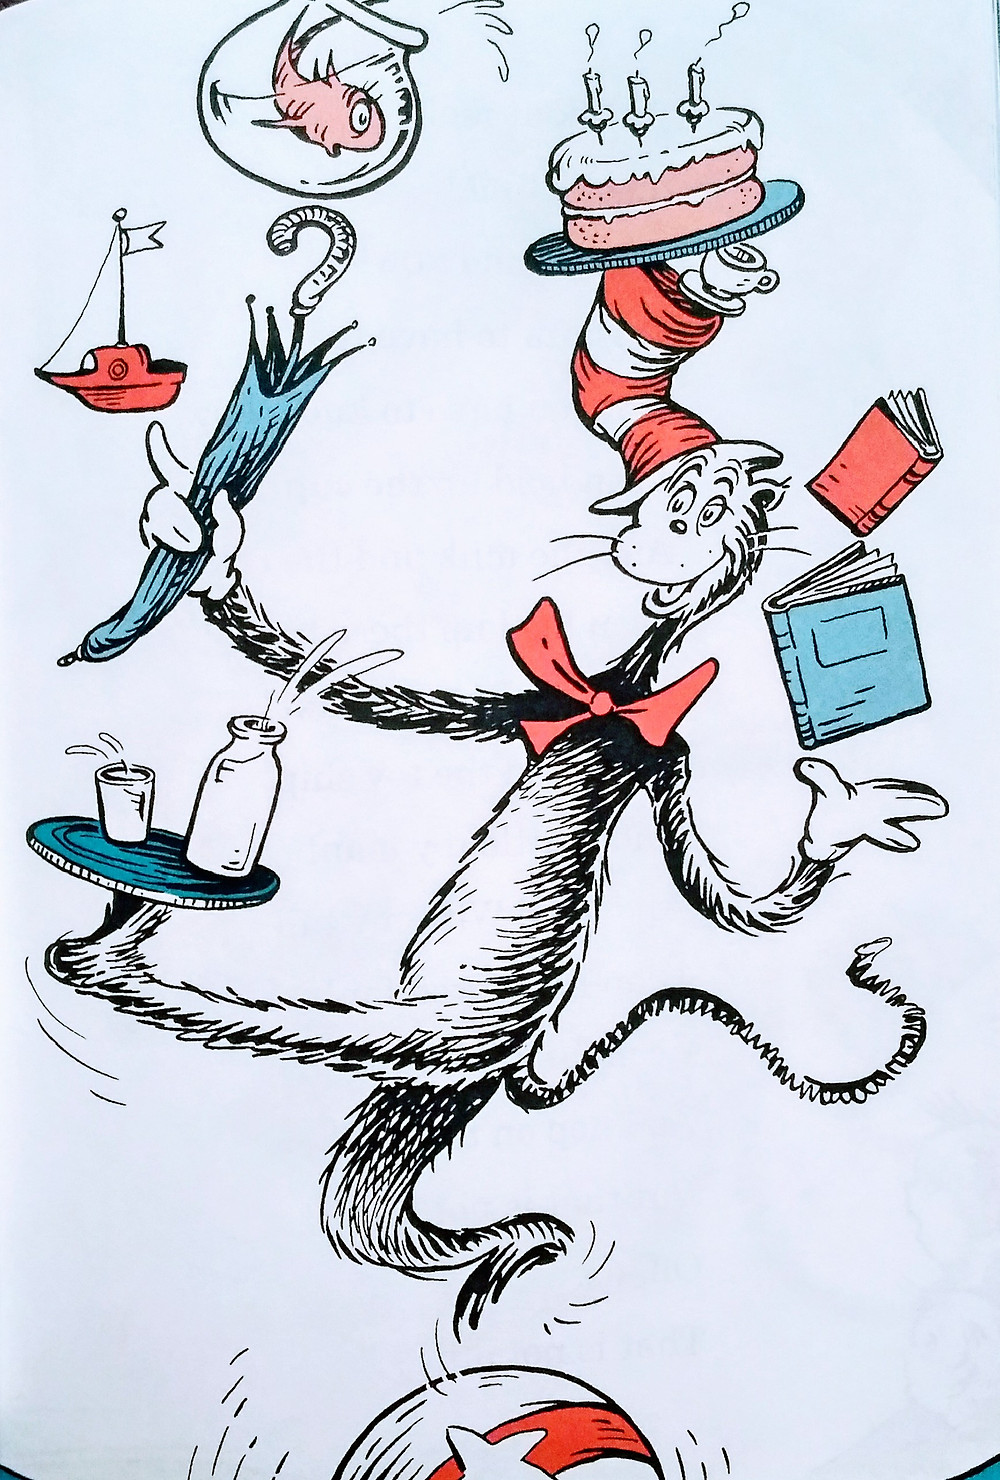 Cat in the Hat, by Dr. Seuss, 1950s